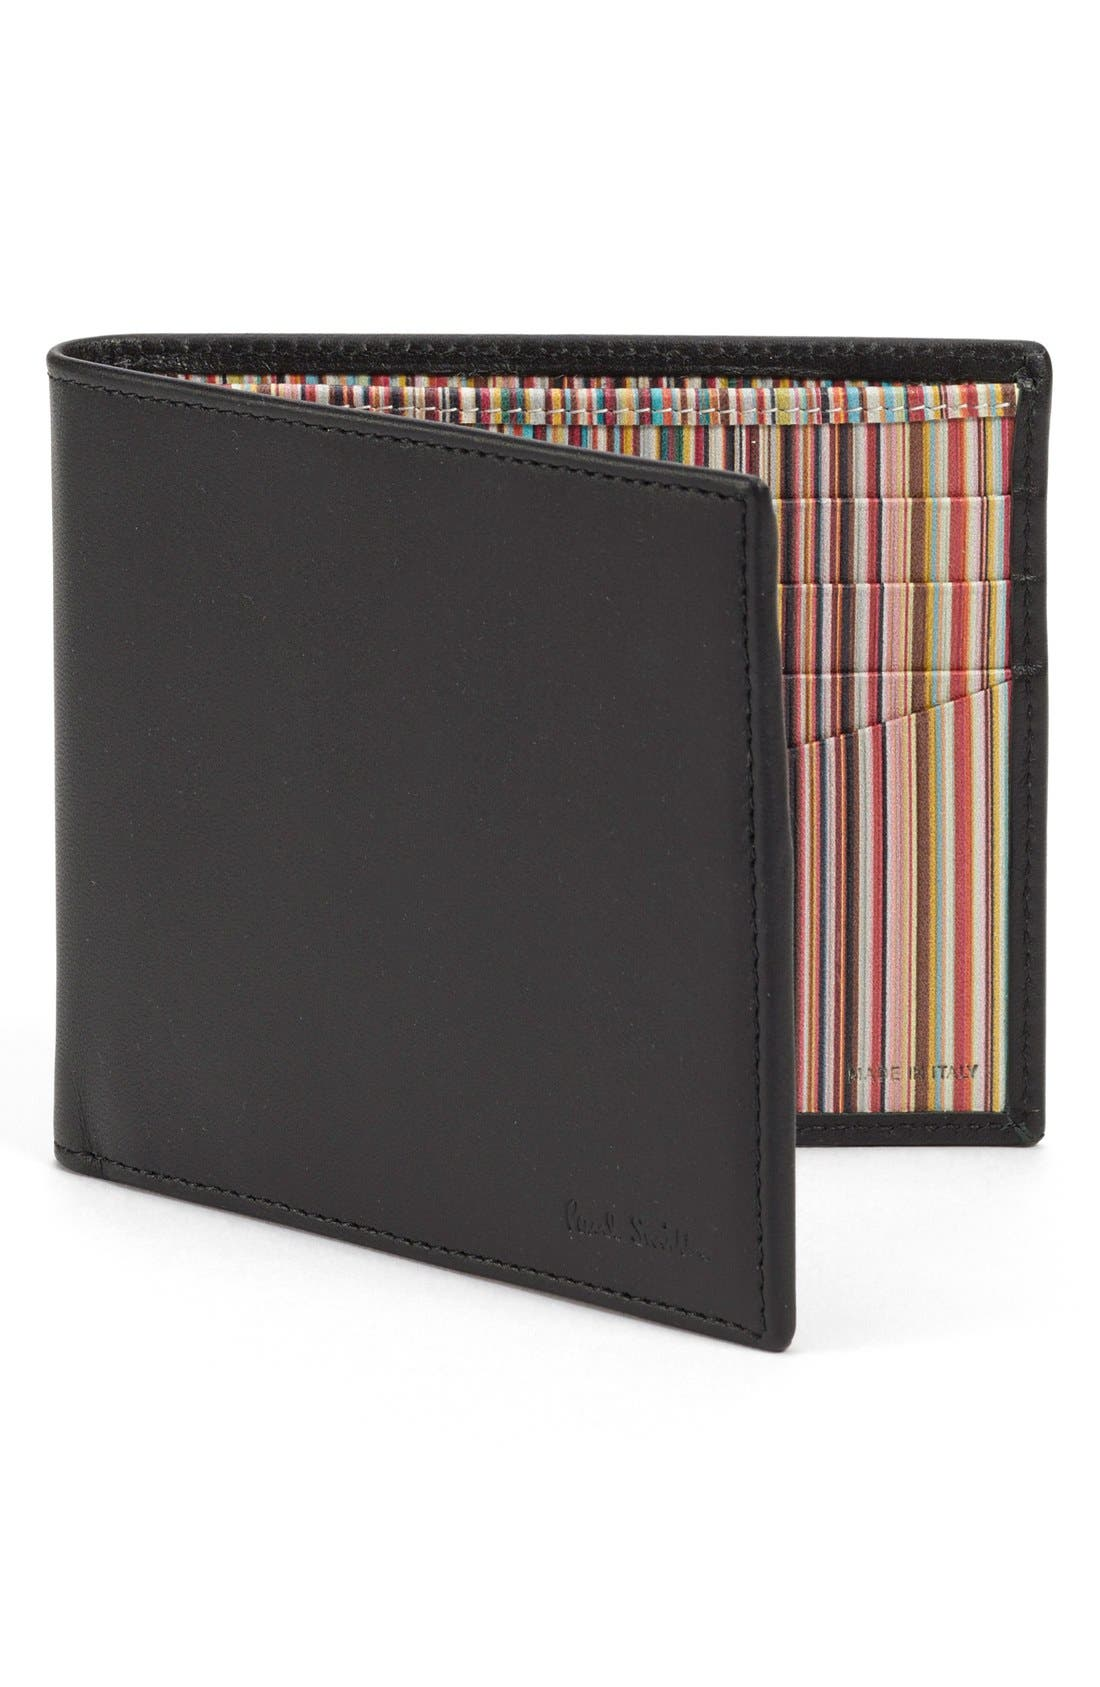 Interior Stripe Leather Billfold,                             Main thumbnail 1, color,                             001